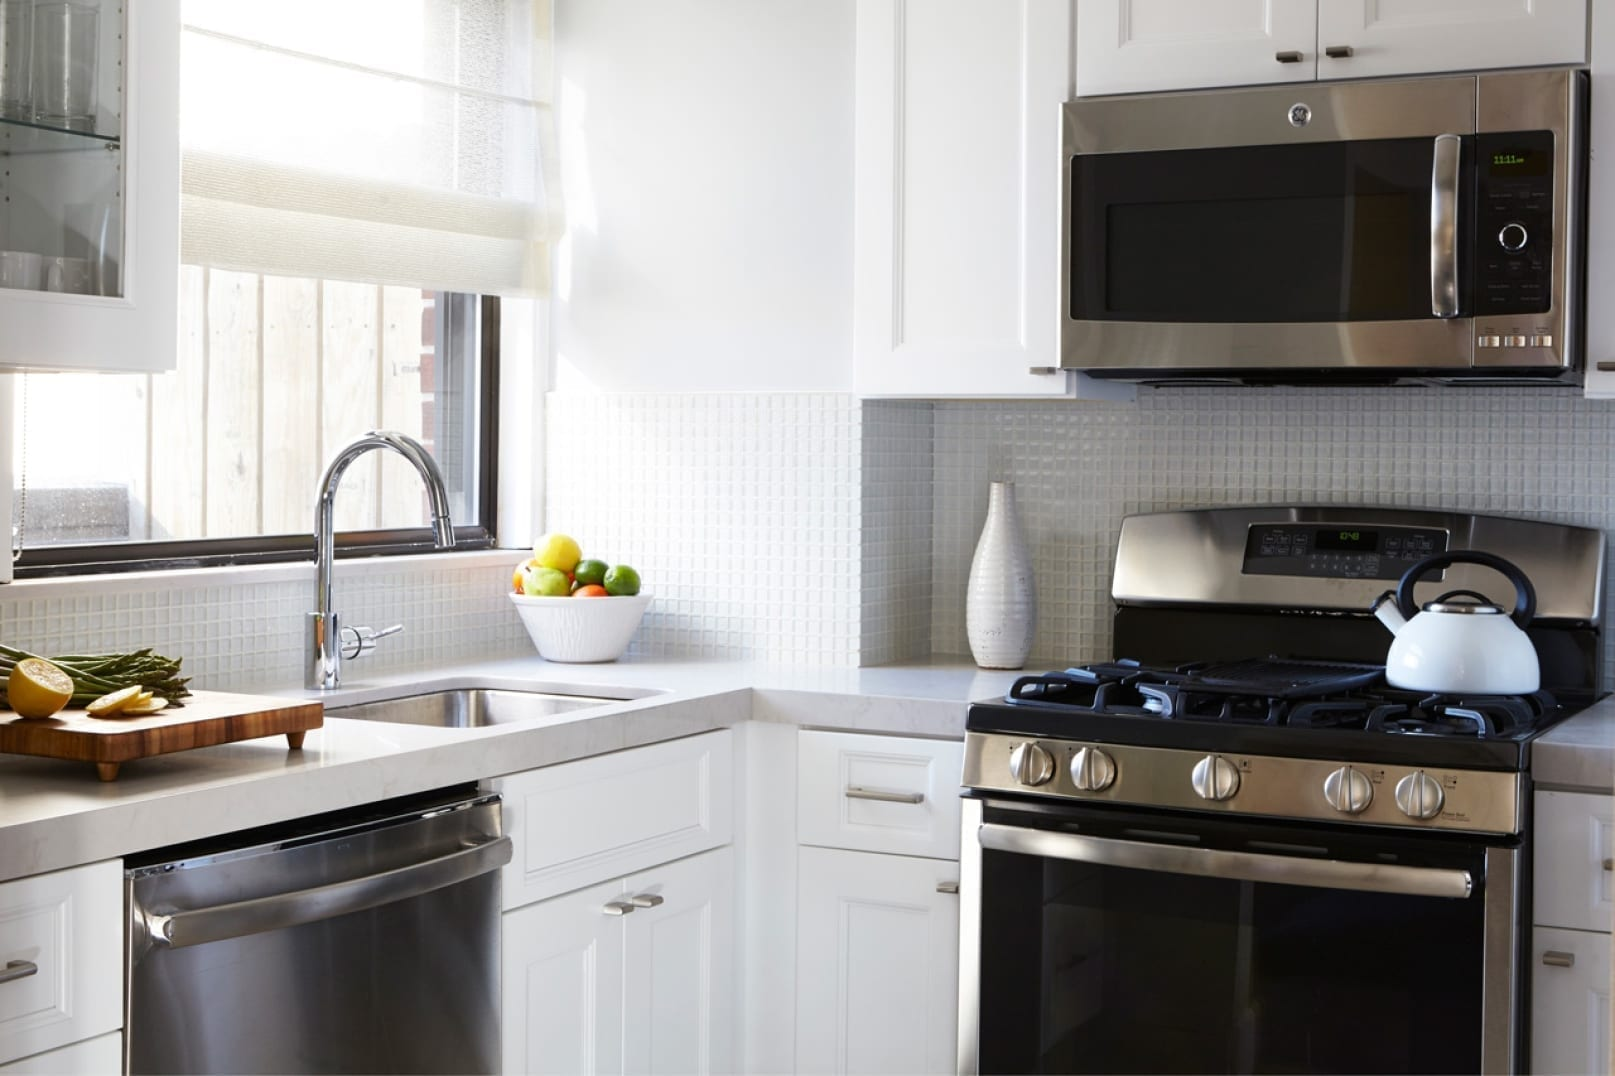 Corner of the kitchen, inside a Gardens Suite Penthouse. A white tea kettle is placed on the stove. A silver microwave above matches the stovetop. A bowl of fruit and a cutting board surround the window by the sink.